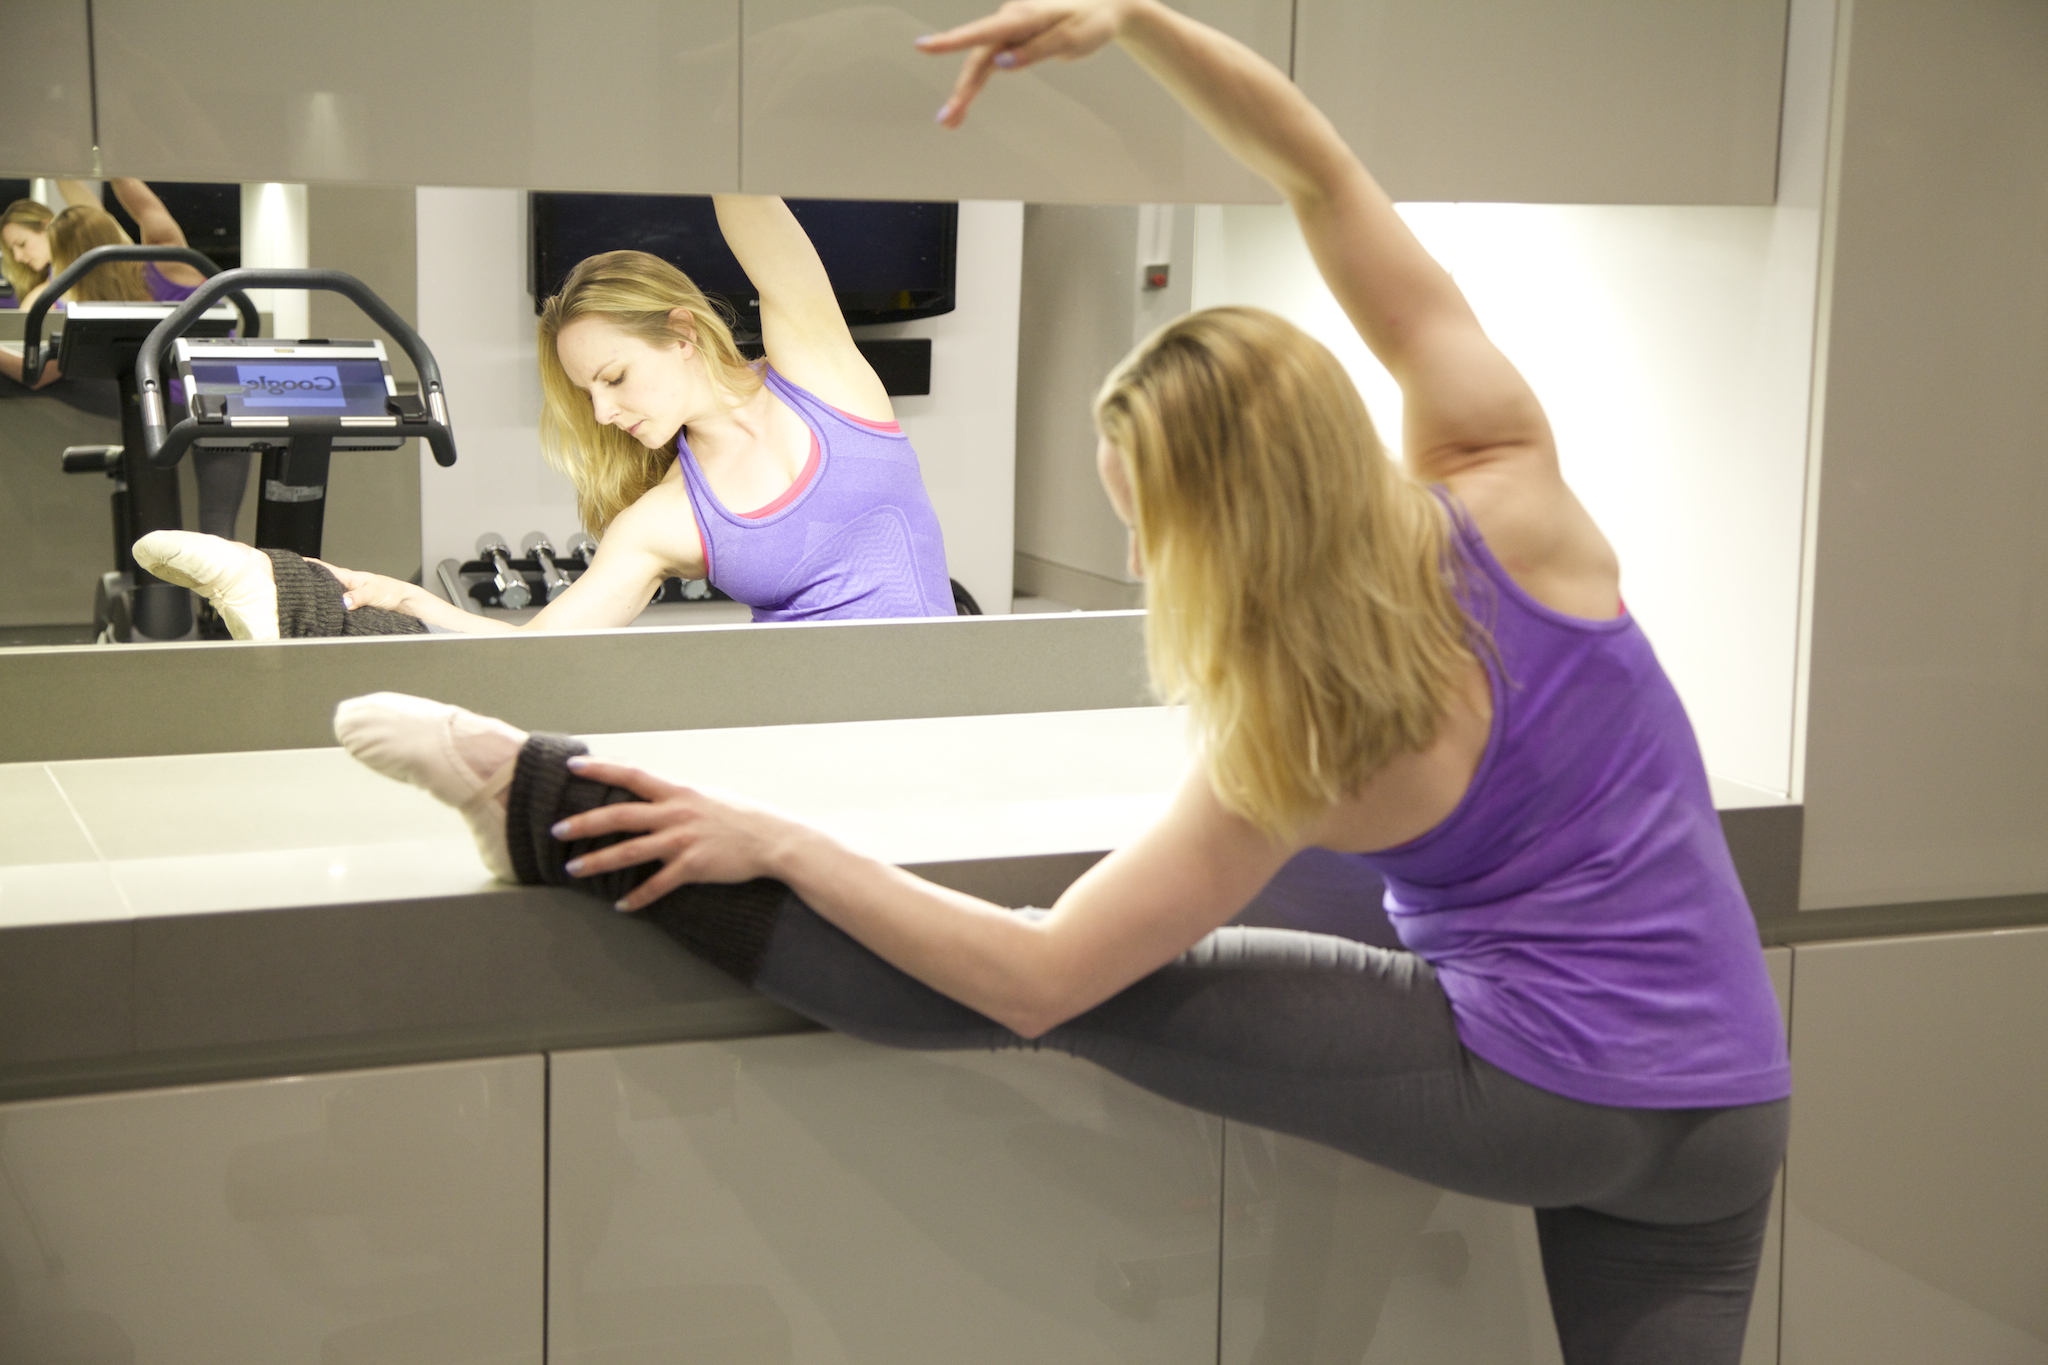 Precision Movement's KT talks about how to make the Ballet Fitness fad work for you